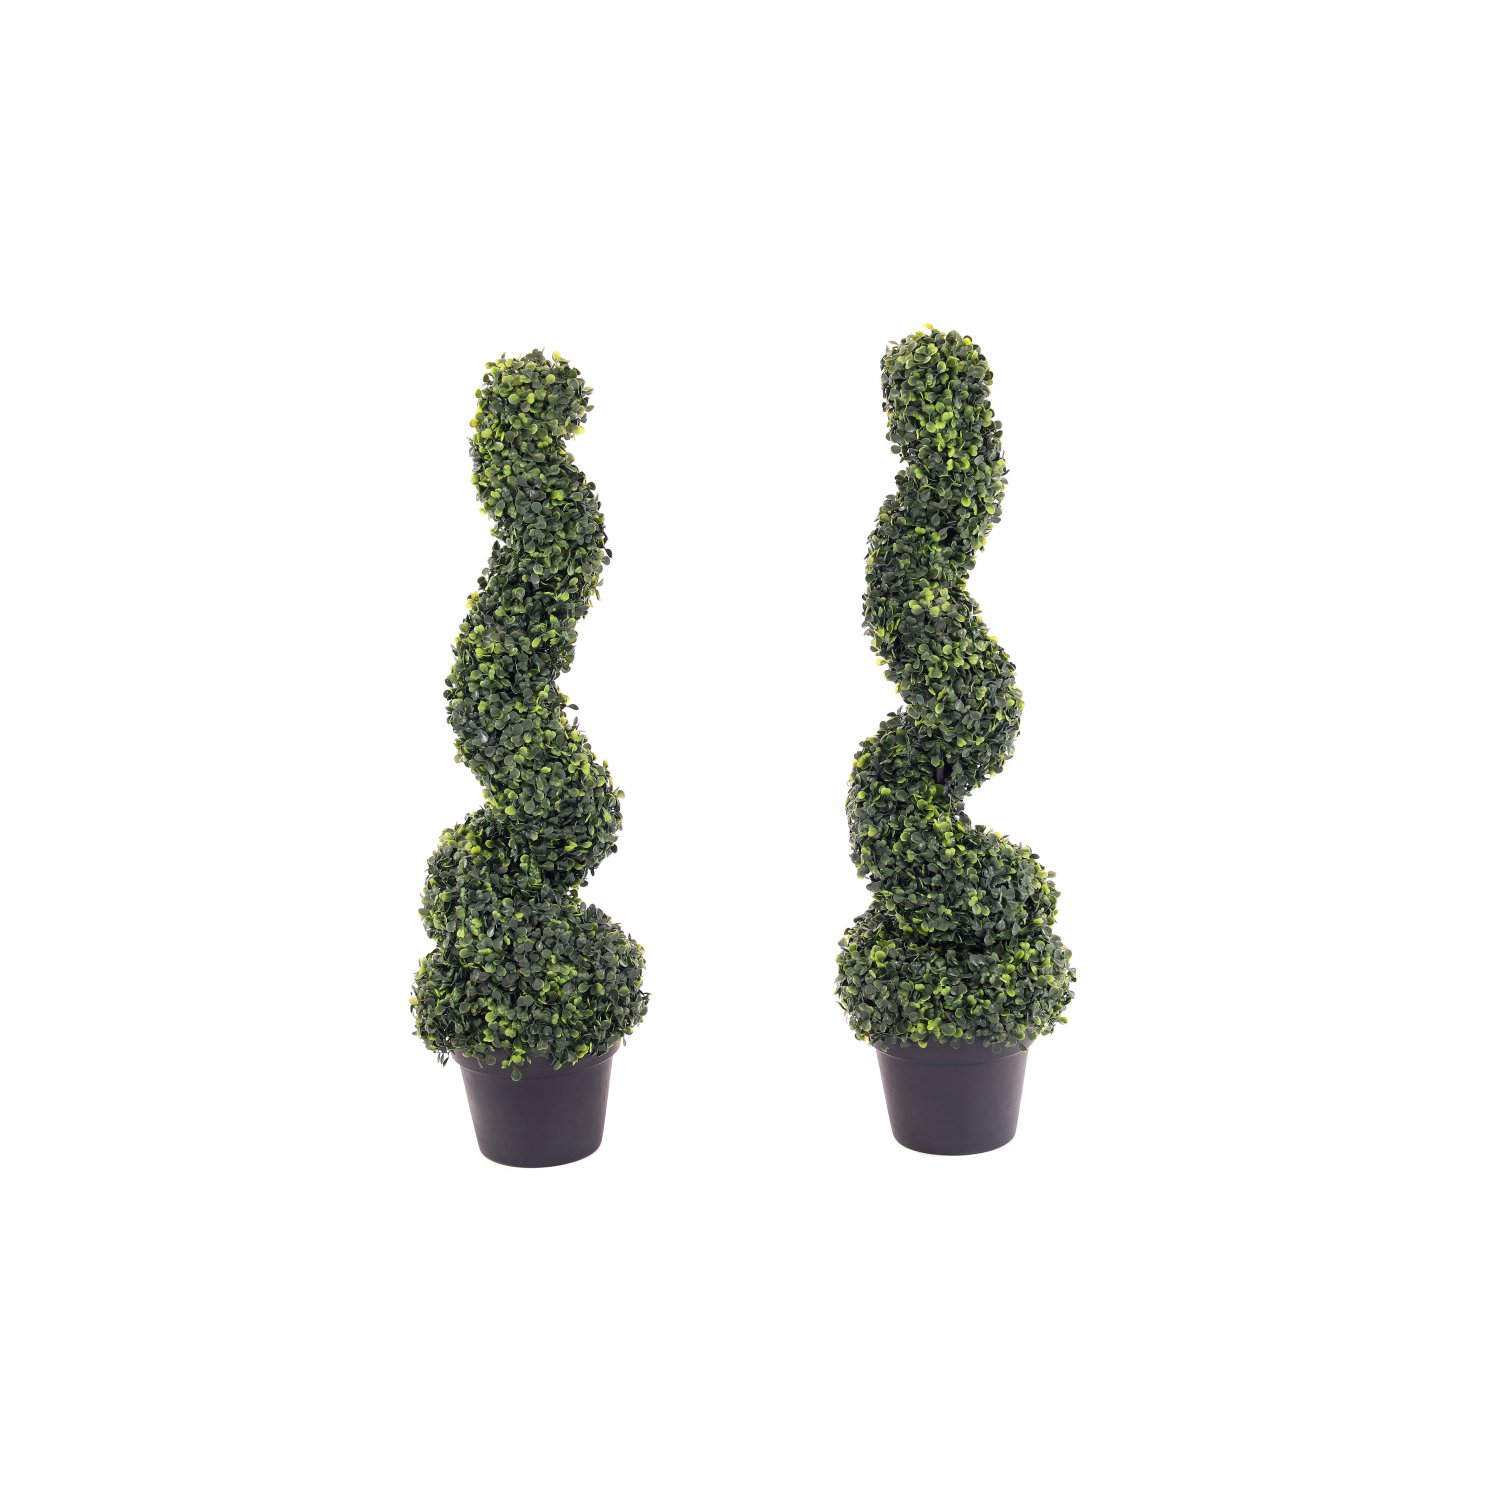 Set Of 2 Artificial Topiary Boxwood Spiral Trees 80cm Indoor Outdoor Decoration 47 99 Oypla Stocking The Very Best In Toys Electrical Furniture Homeware Garden Gifts And Much More